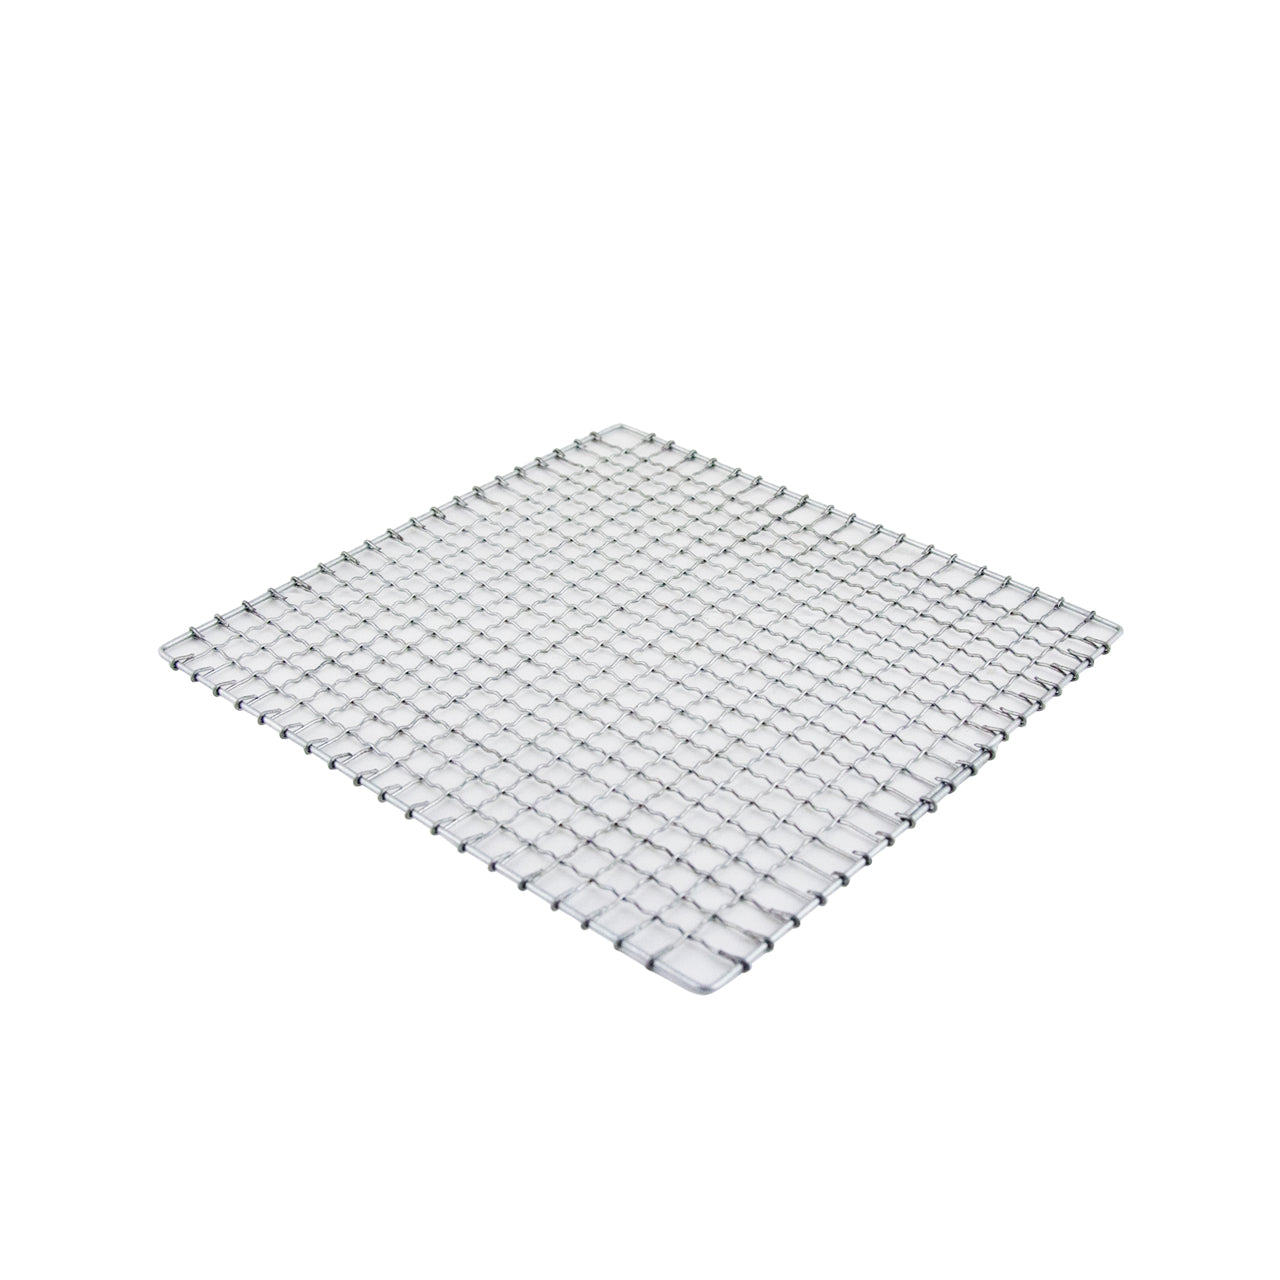 Grill Net Replacement for Charcoal Grill Large (SKU: 95006)